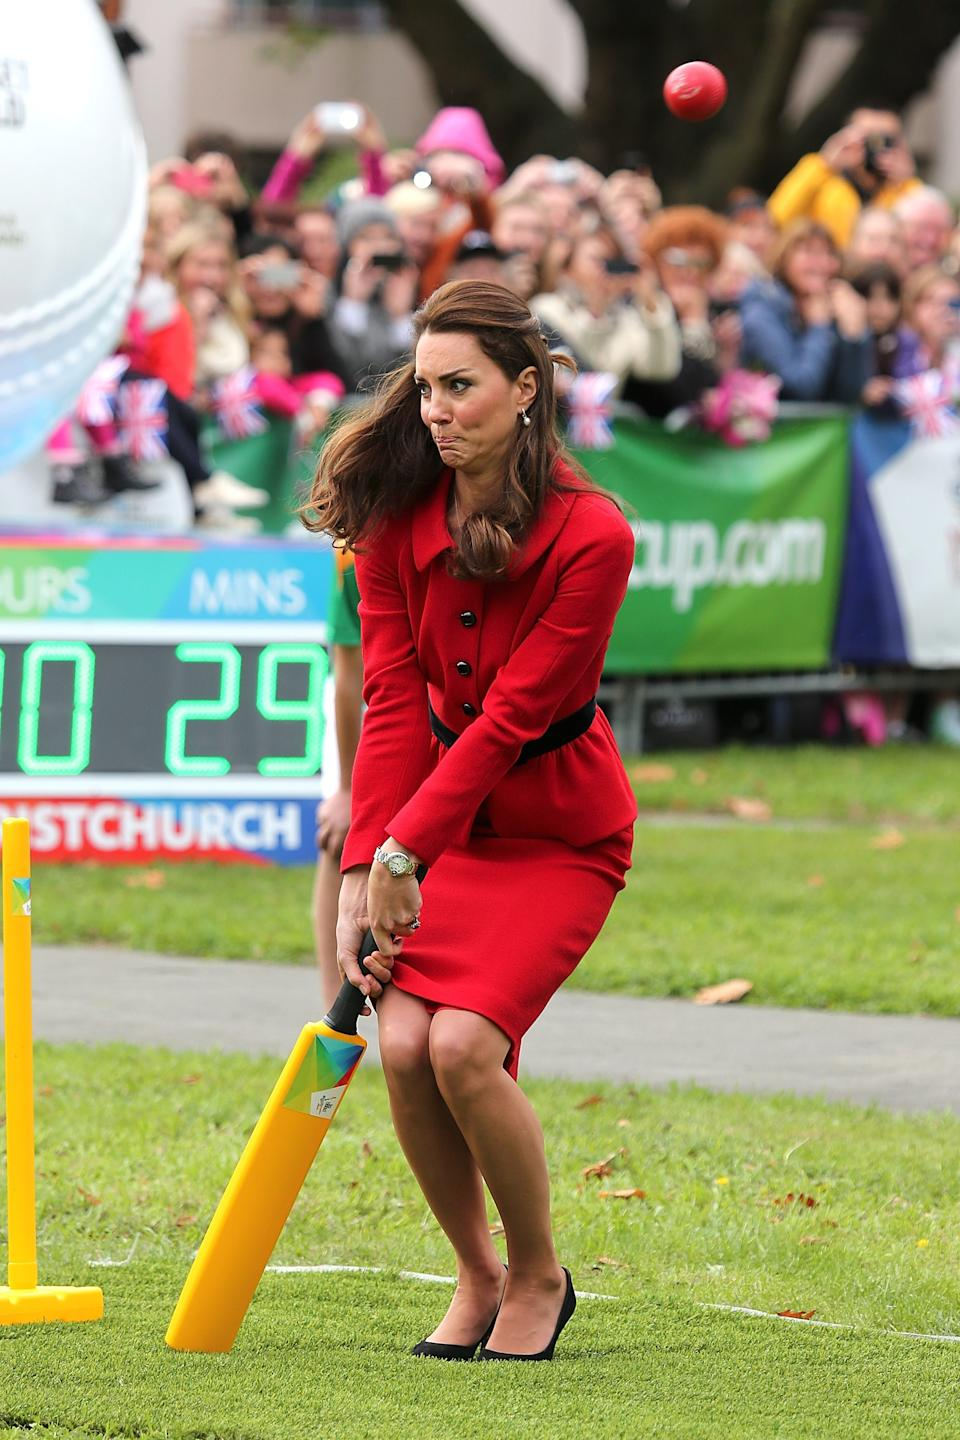 Kate doesn't look too pleased with her performance as she plays a game of cricket during a visit to Latimer Square in Christchurch in April 2014. She didn't let heels or a skirt stop her trying though. (Martin Hunter/AFP)